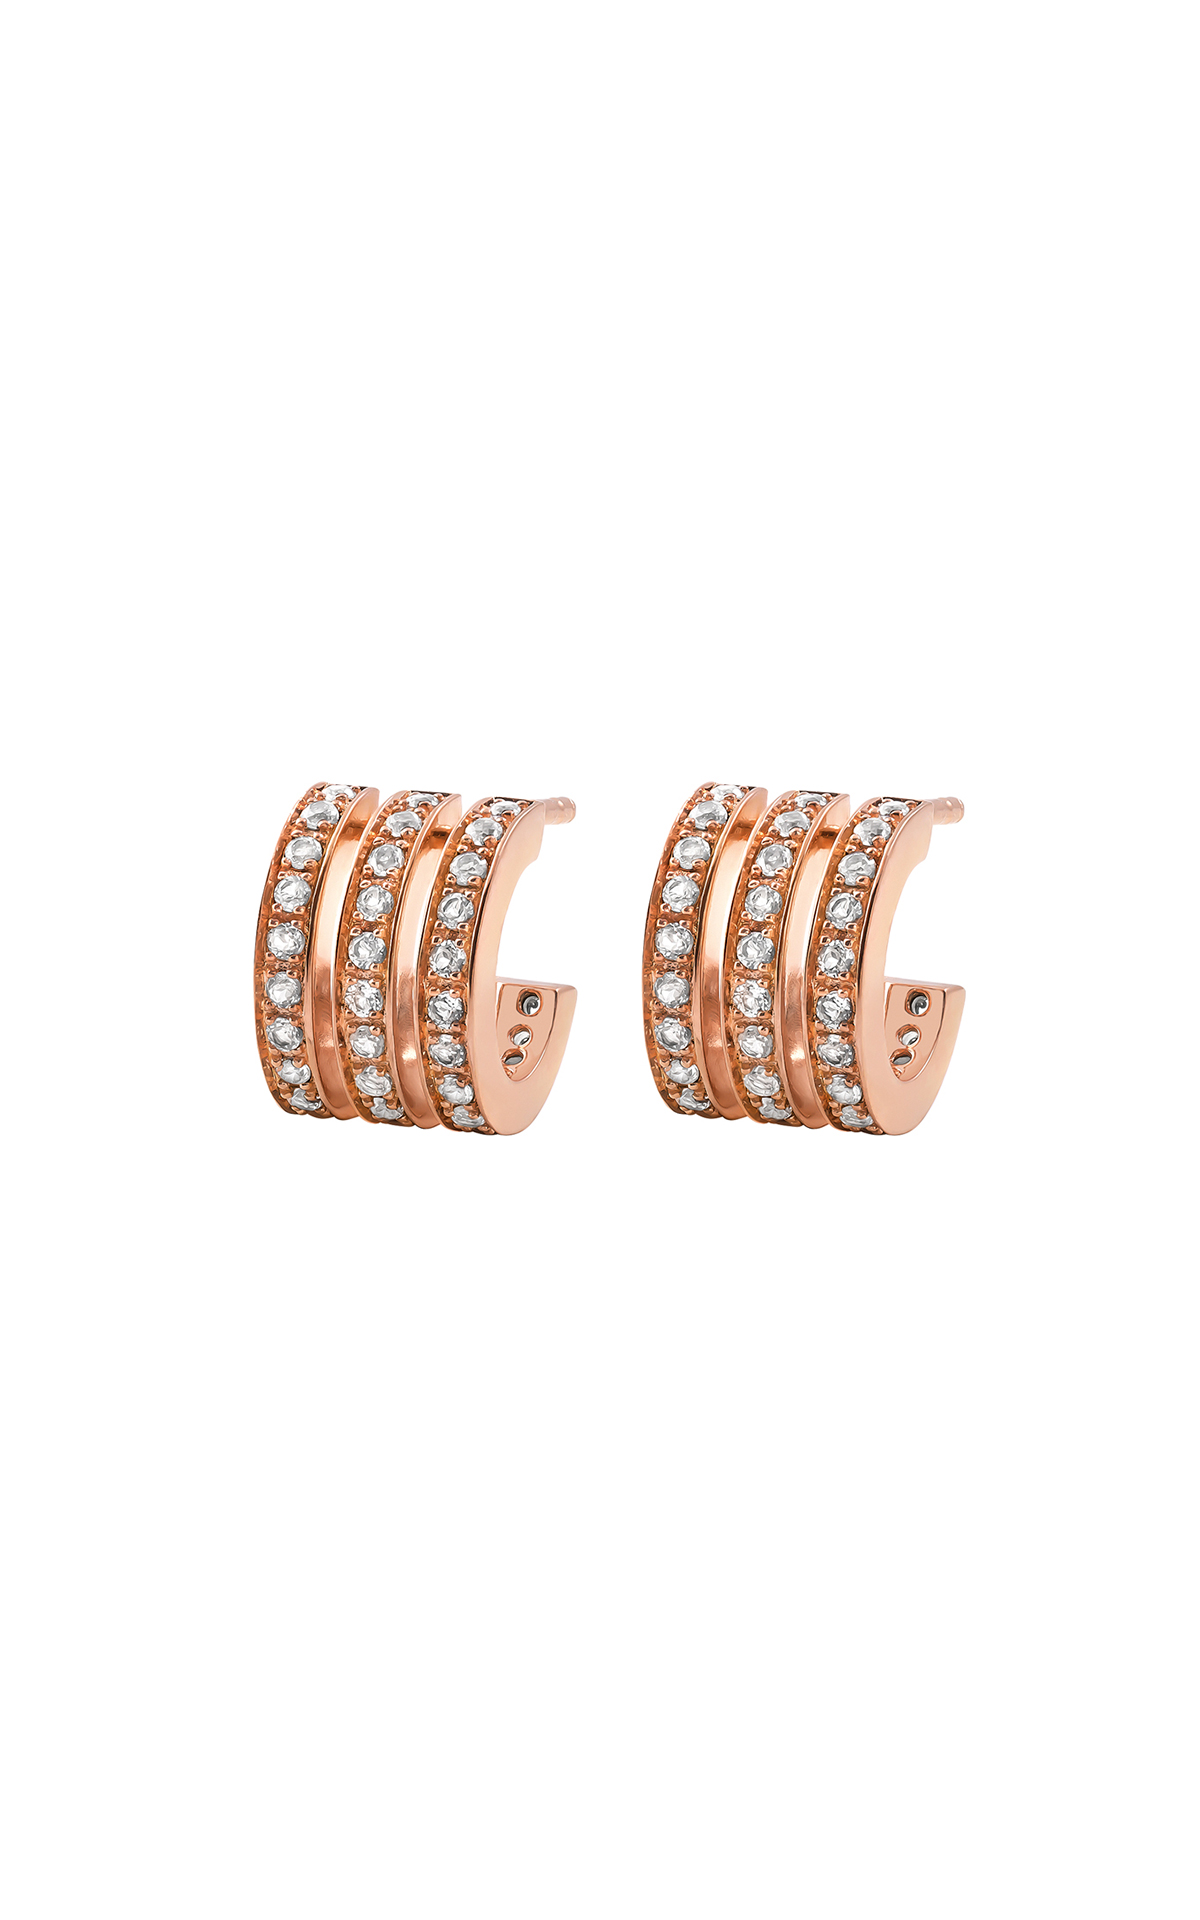 Rose gold earrings Aristocrazy